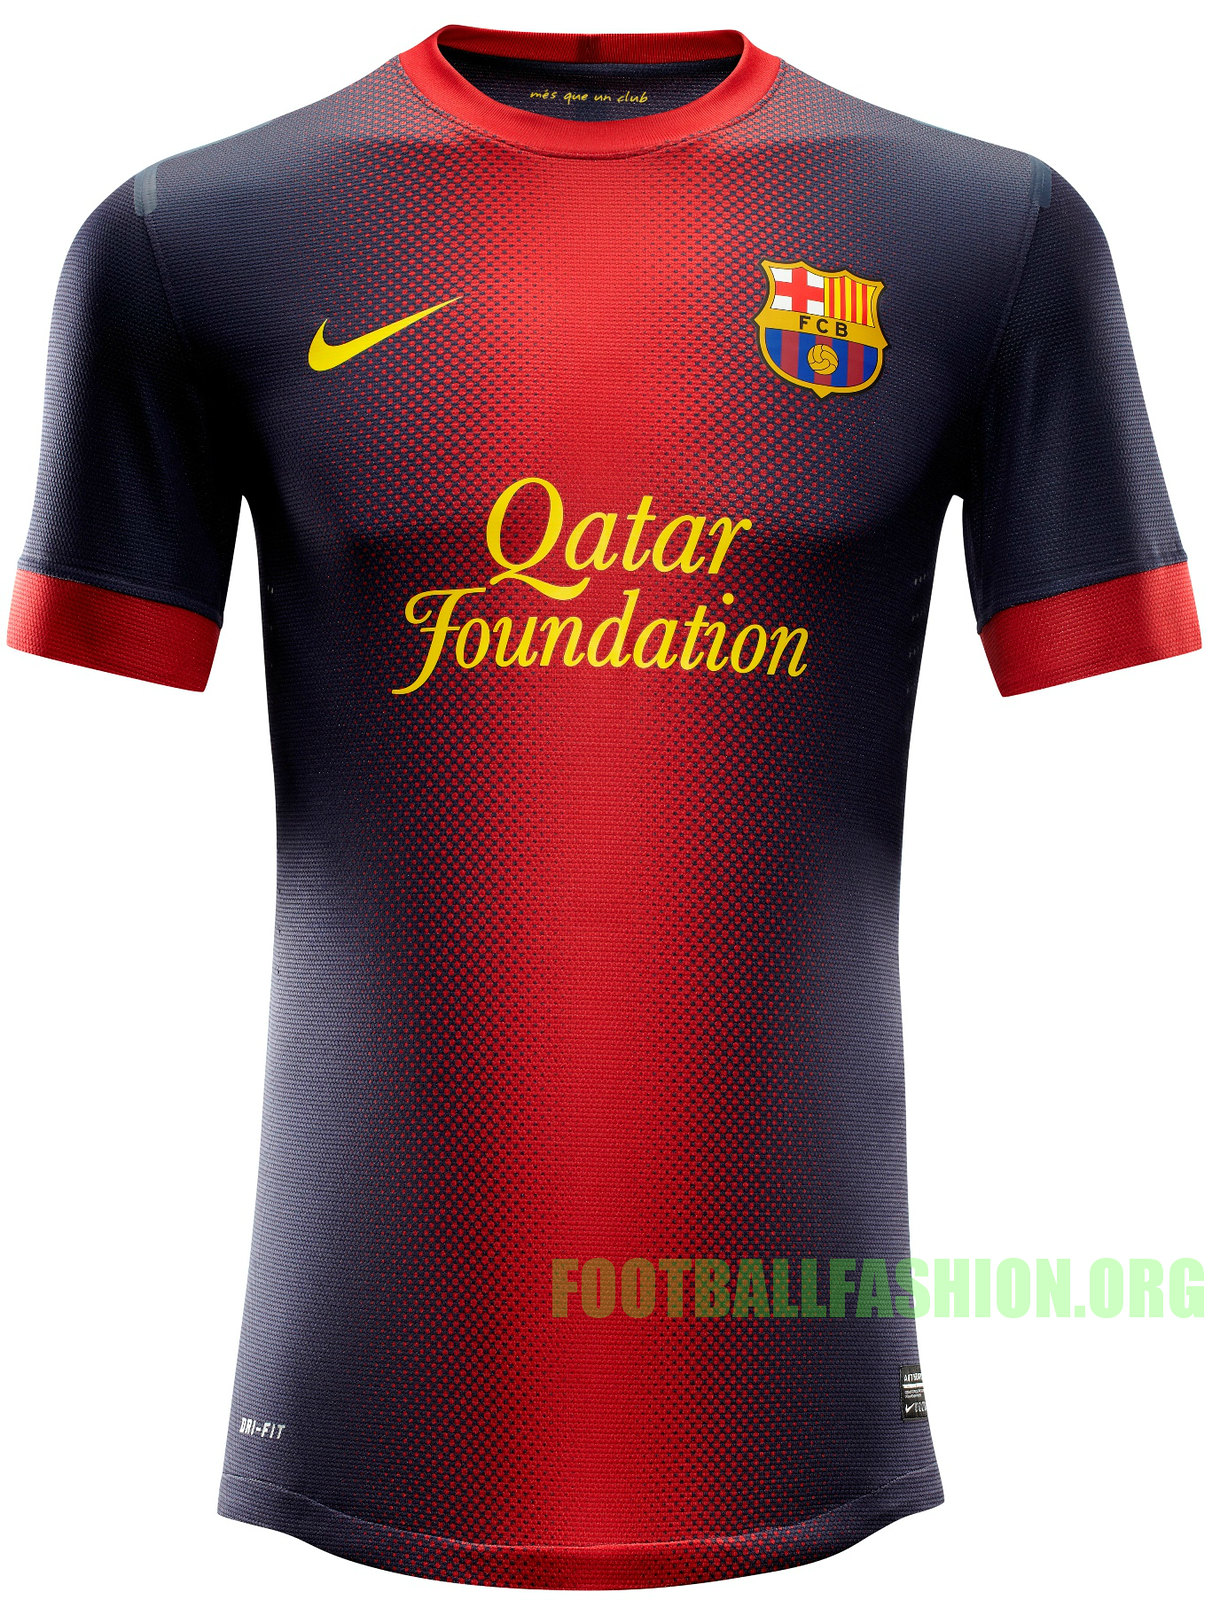 679a52a83 FC Barcelona Nike 2012 13 Home and Away Soccer Jerseys   Football Kits    Camisetas ...